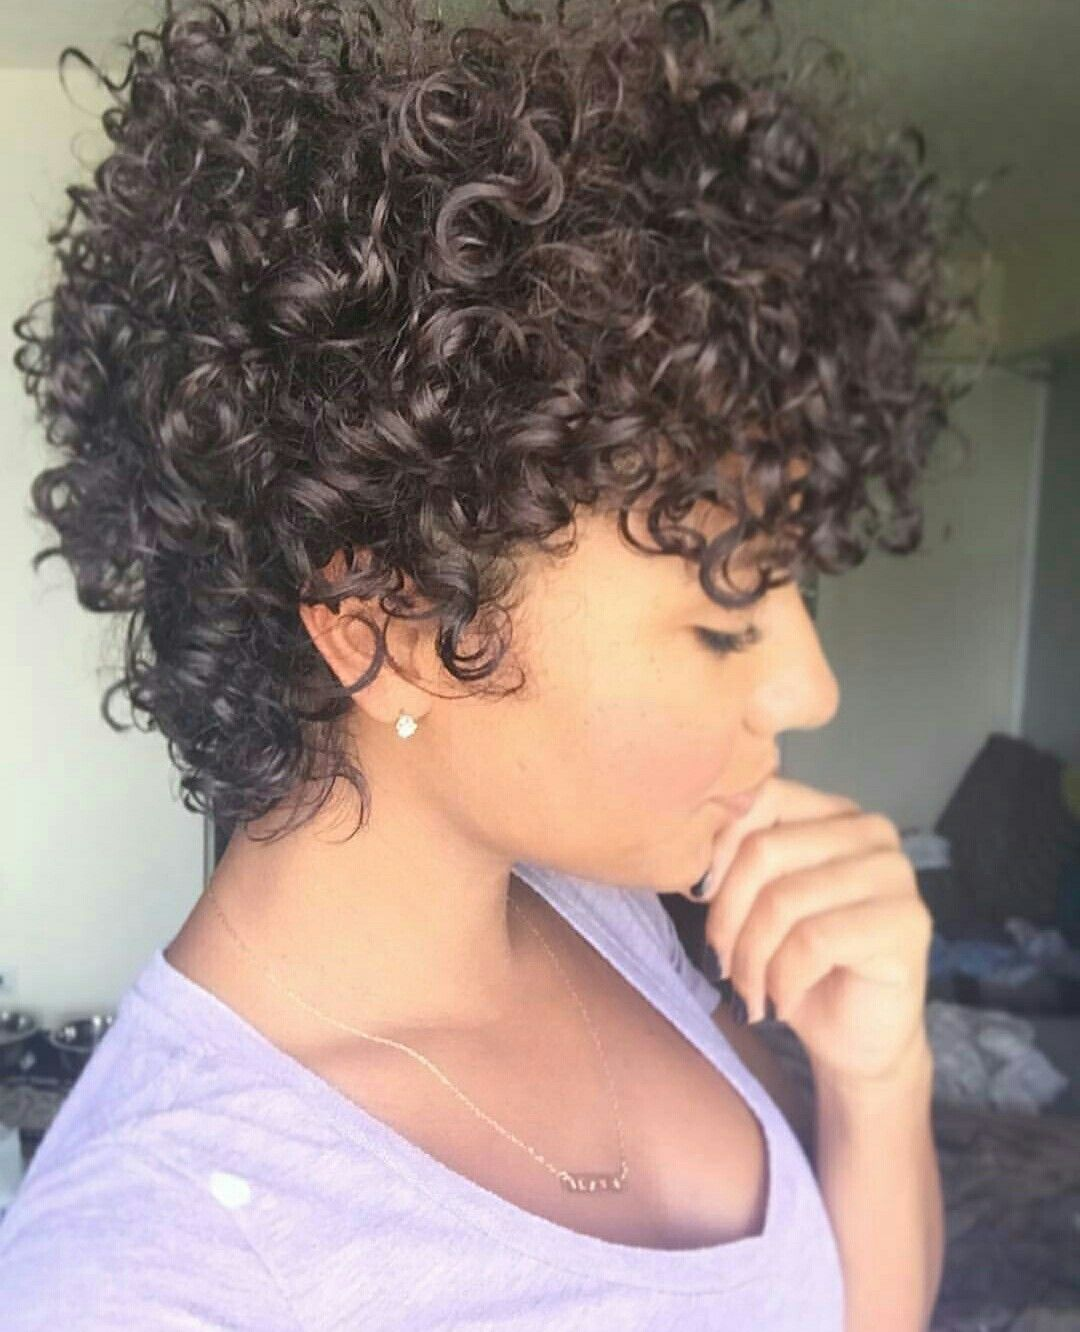 short hair perm #flhairbylo #avedaibw #inspo | aveda ibw in